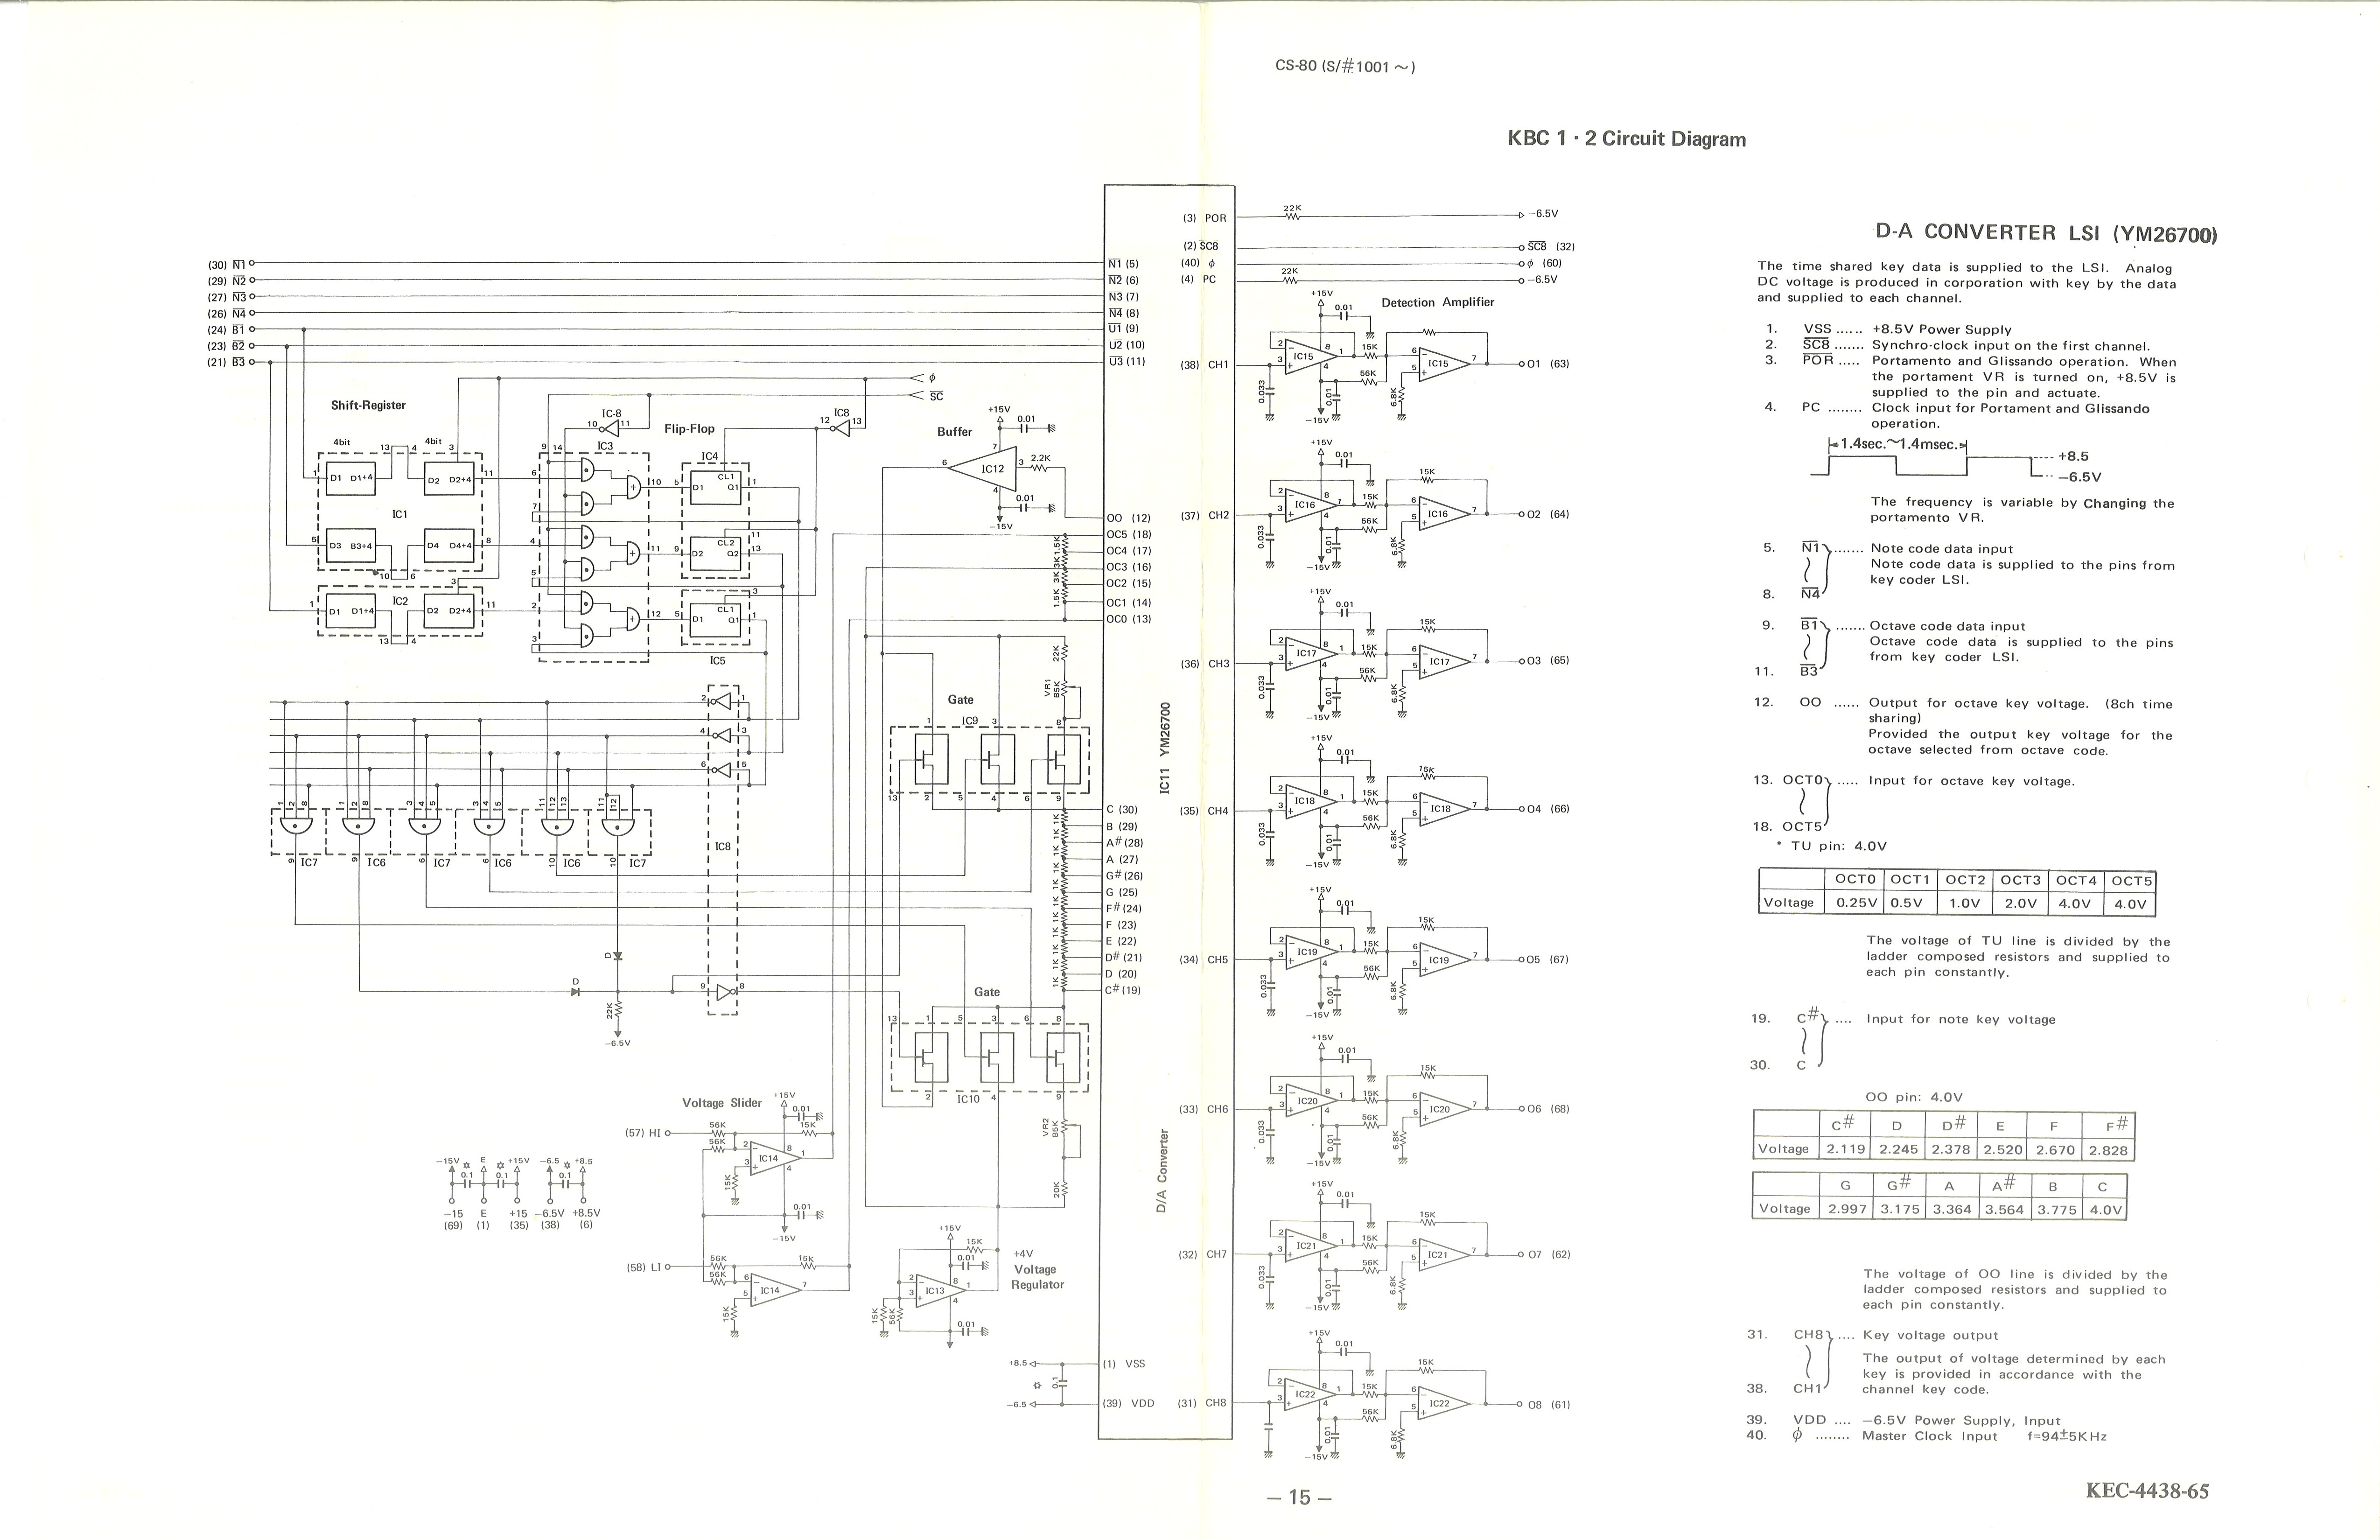 15 KBC 1 2 Circuit Diagram yamaha cs 80 service manual yamaha schematic diagram at nearapp.co